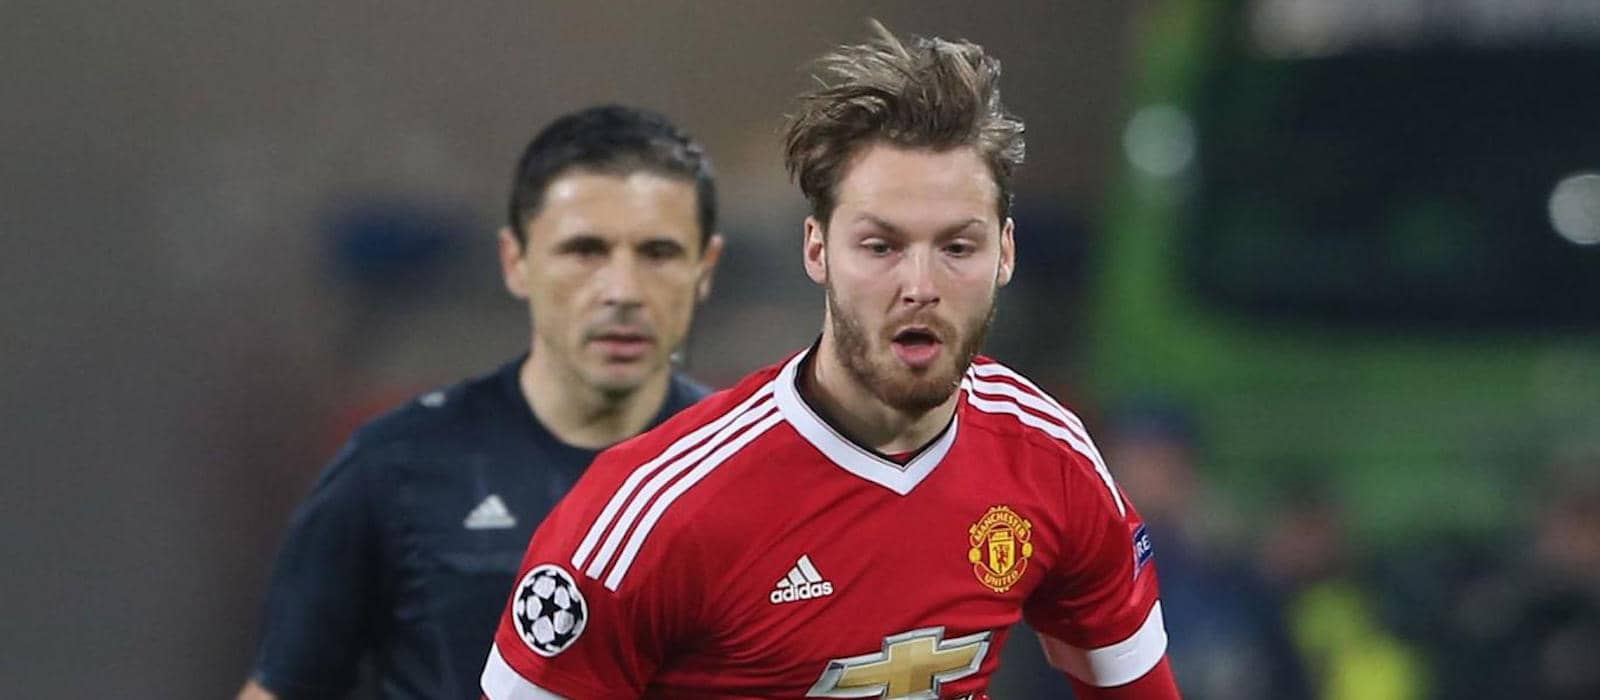 Nick Powell backed to bounce back after Manchester United exit